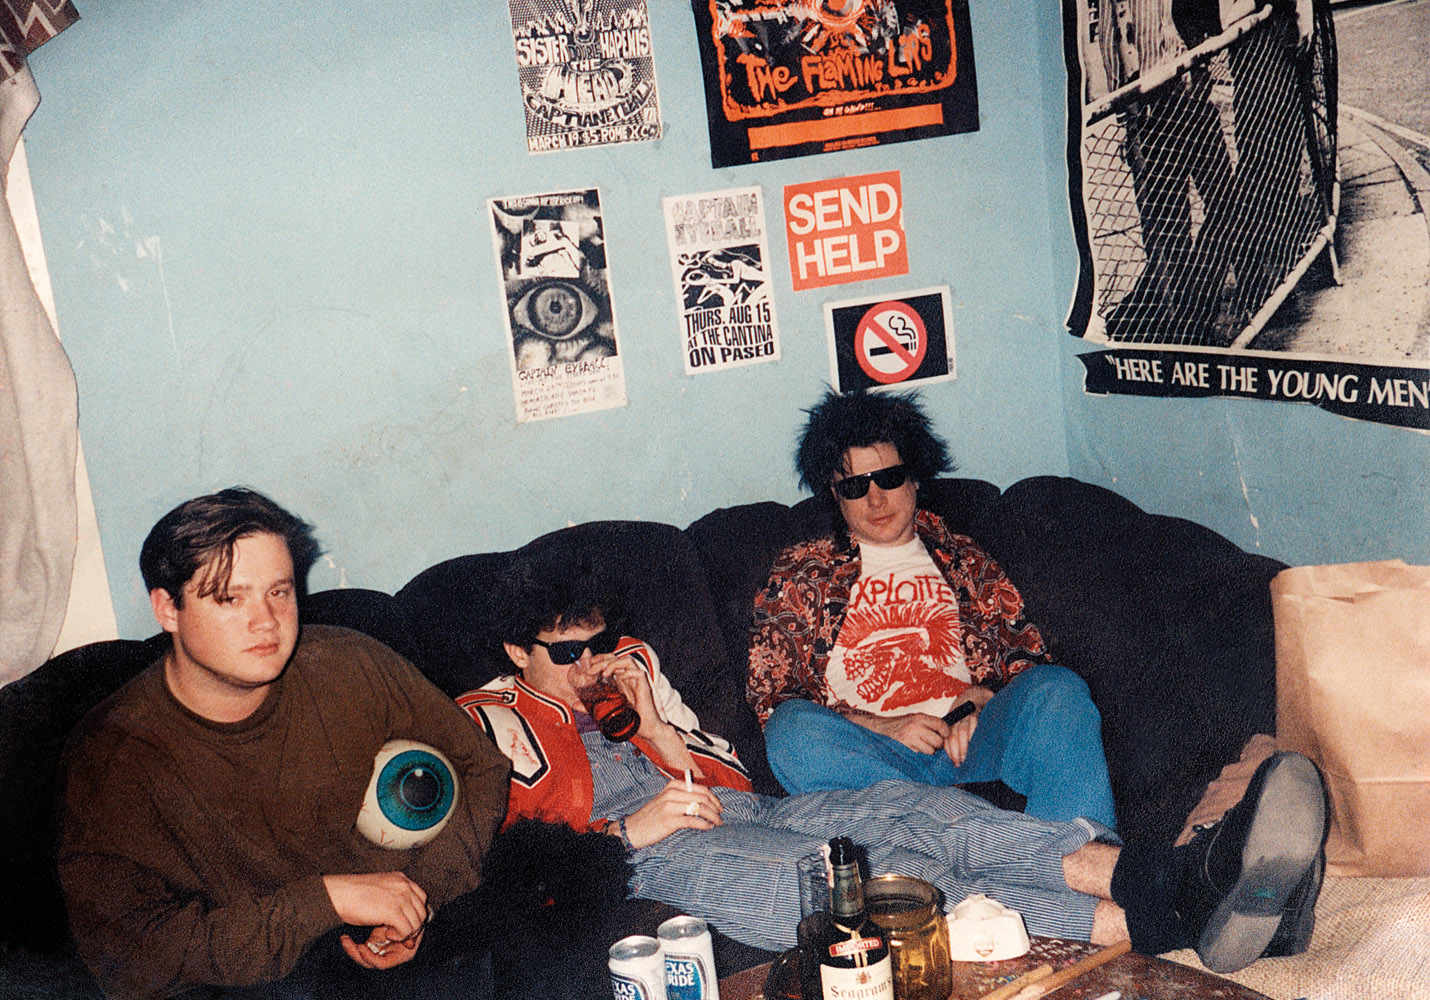 I dated Dave (left), bassist of Oklahoma City's Captain Eyeball. He introduced me to a number of my favourite bands and labels, mostly 4AD and Sub Pop, The Pixies, Tones on Tail, Sonic Youth...It was from him that I first heard  Bleach  and liked it right away.